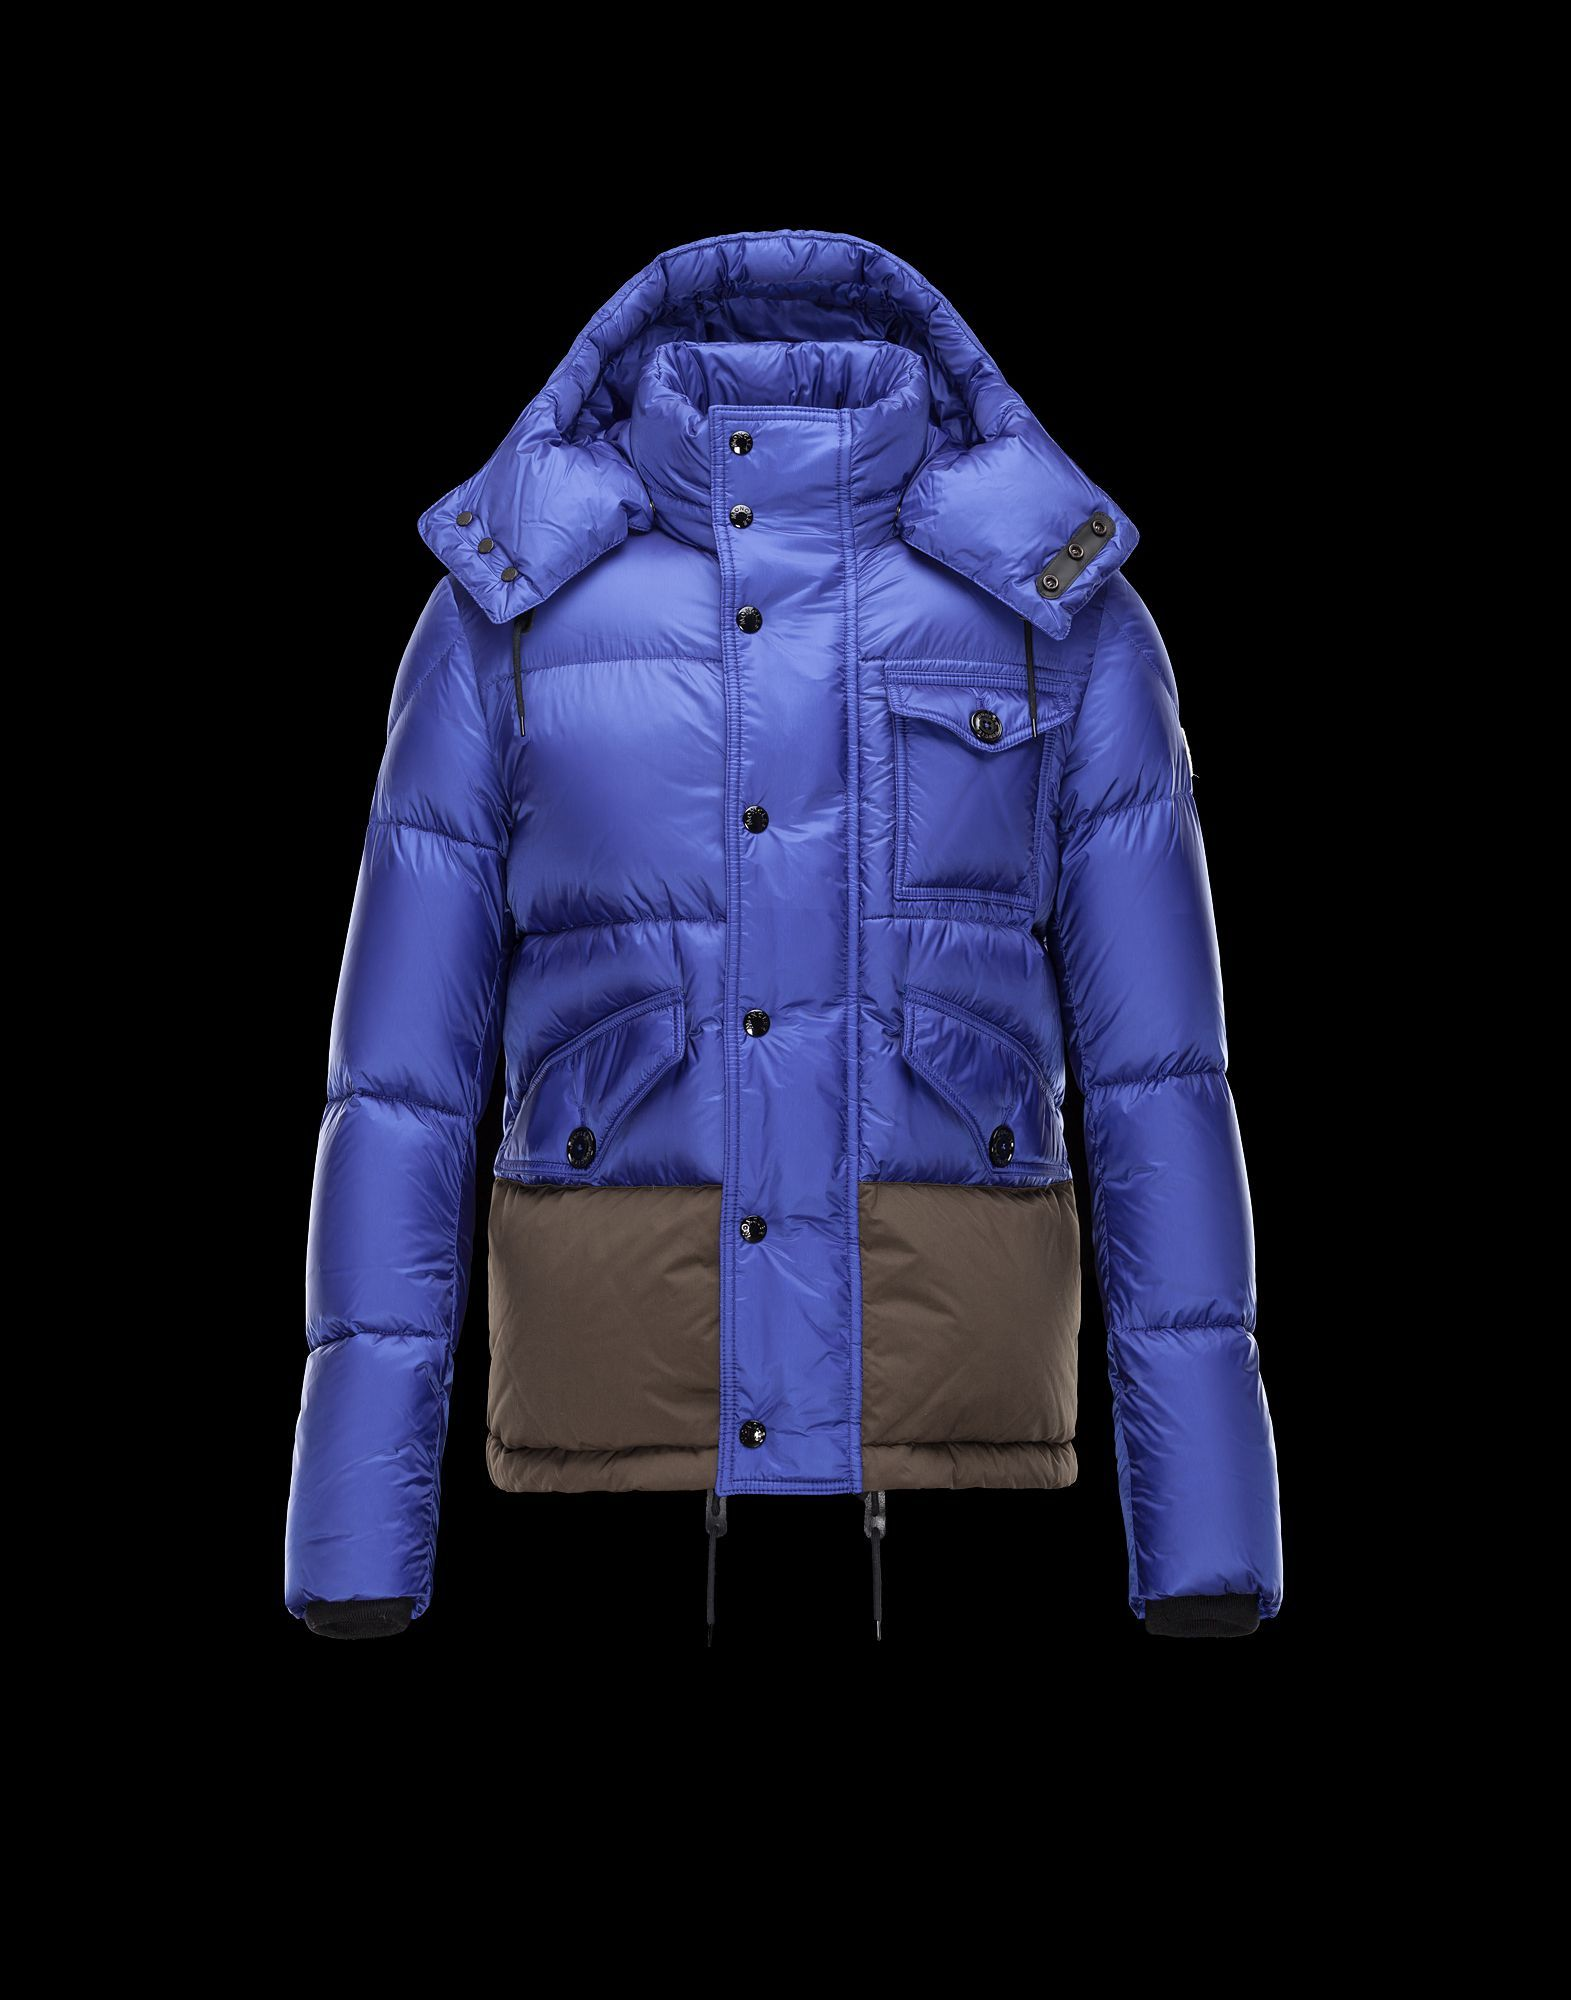 937e746d253 Jacket Men - Outerwear Men on Moncler | My Style | Mens down jacket ...